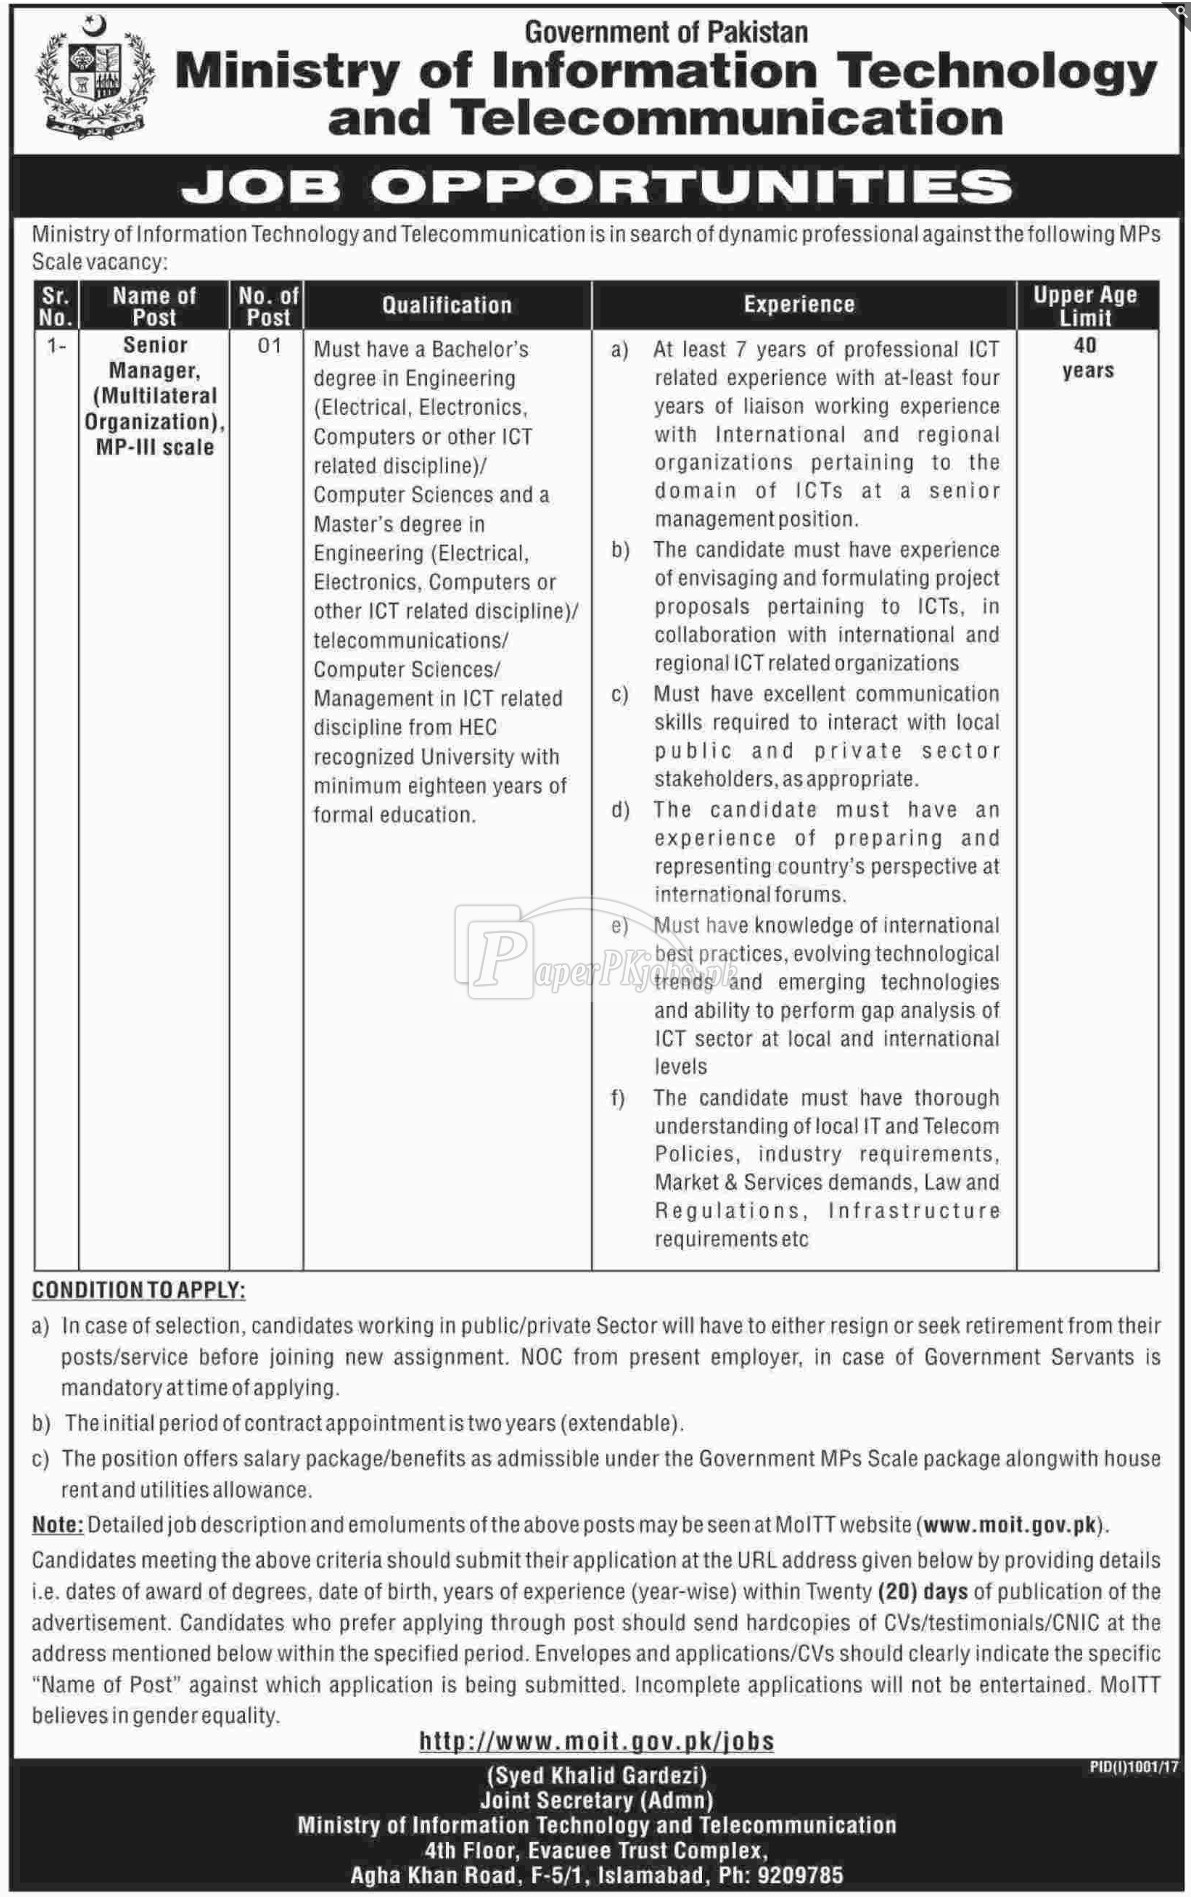 Ministry of Information Technology & Telecommunication Jobs 2017